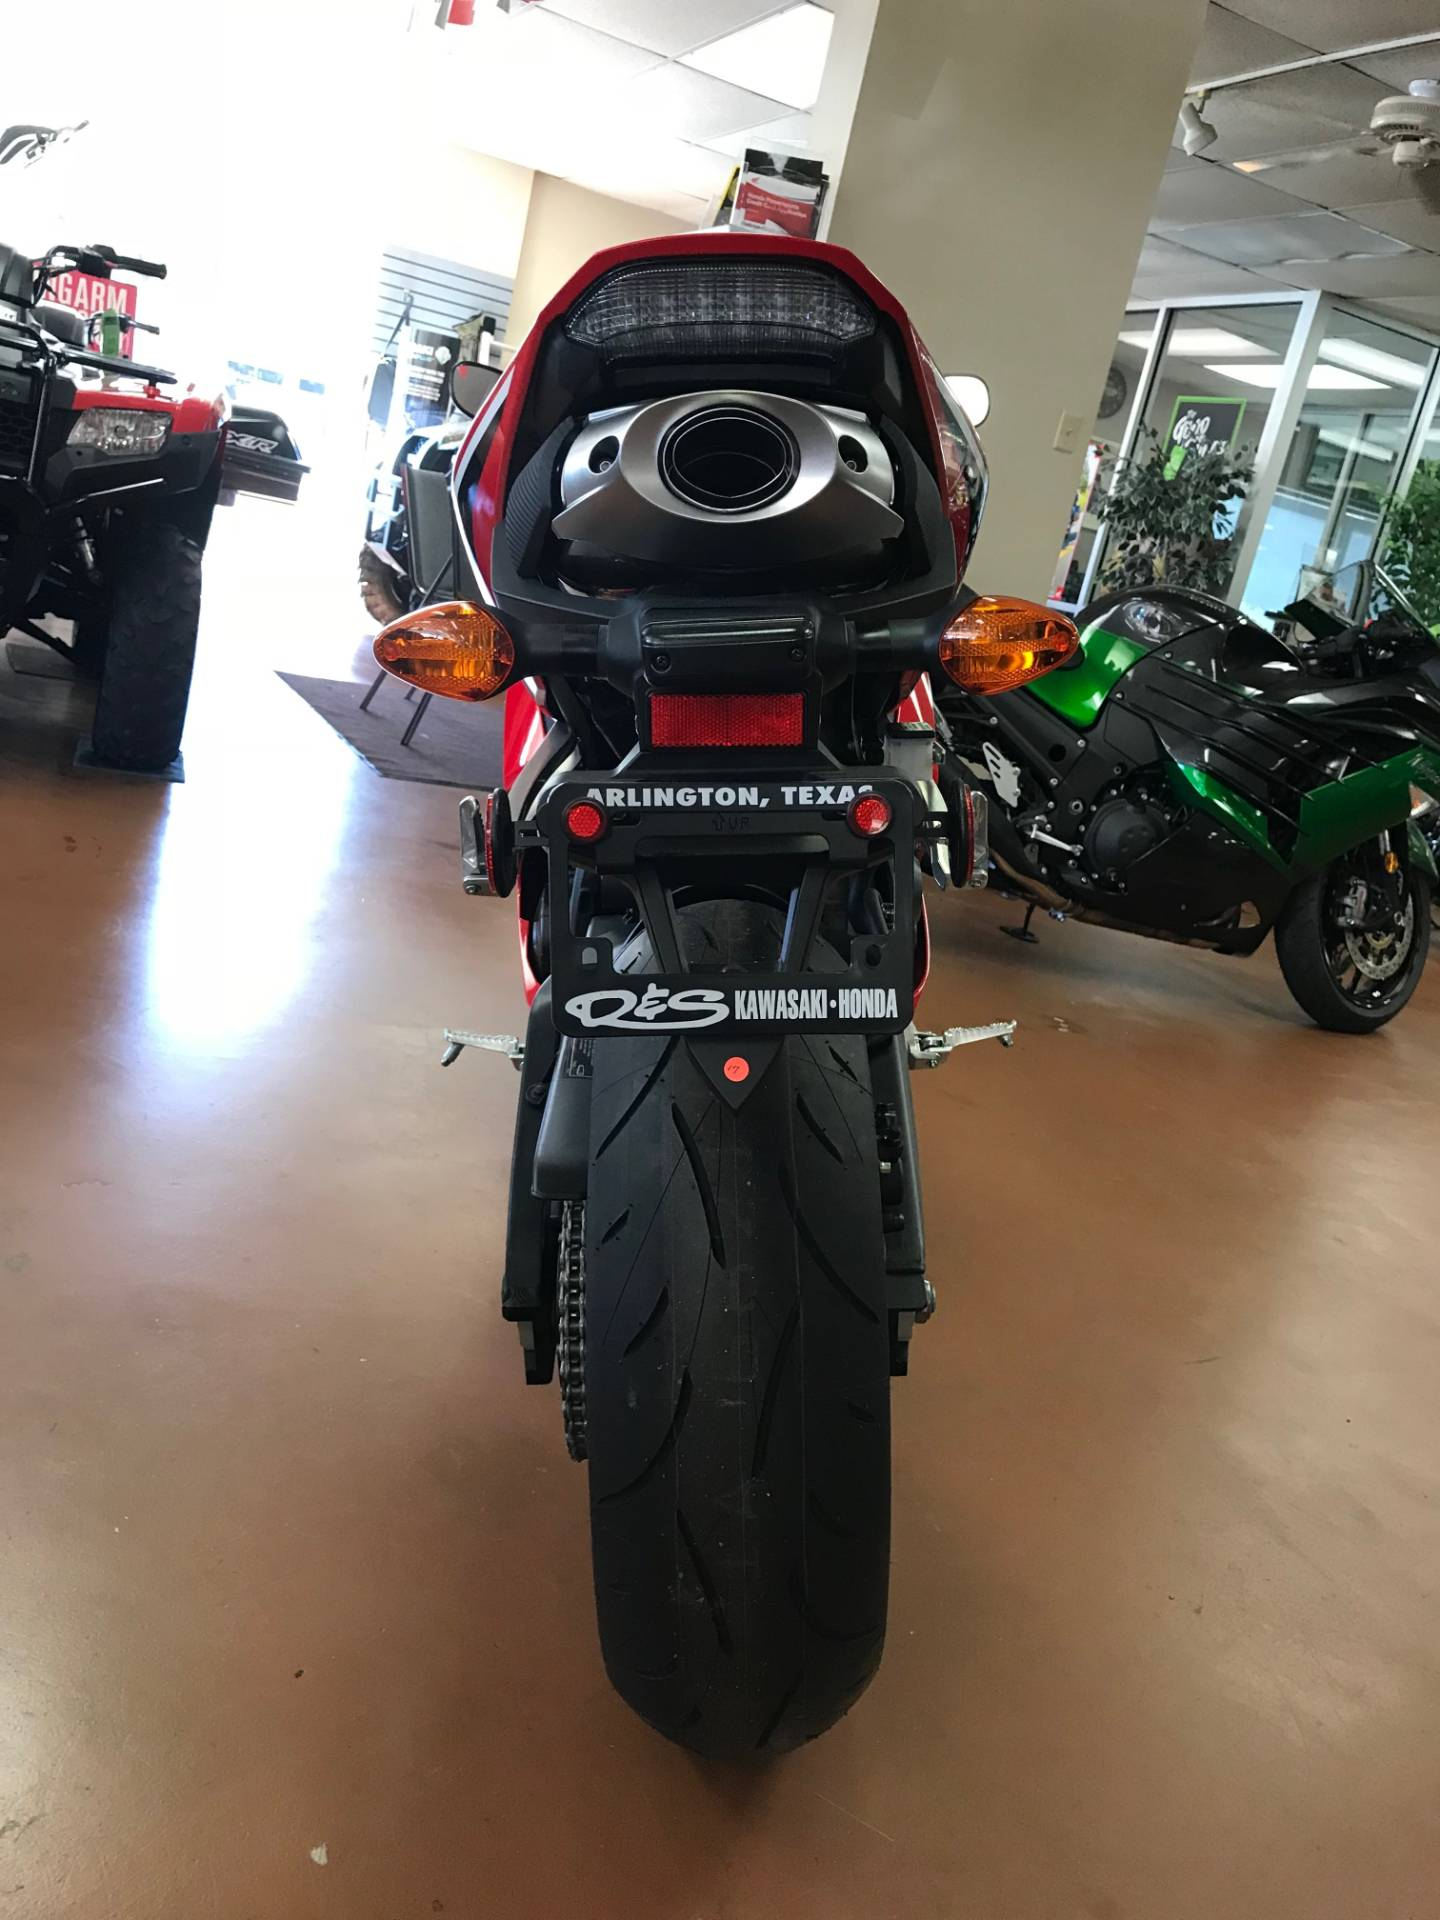 2017 Honda CBR600RR in Arlington, Texas - Photo 5